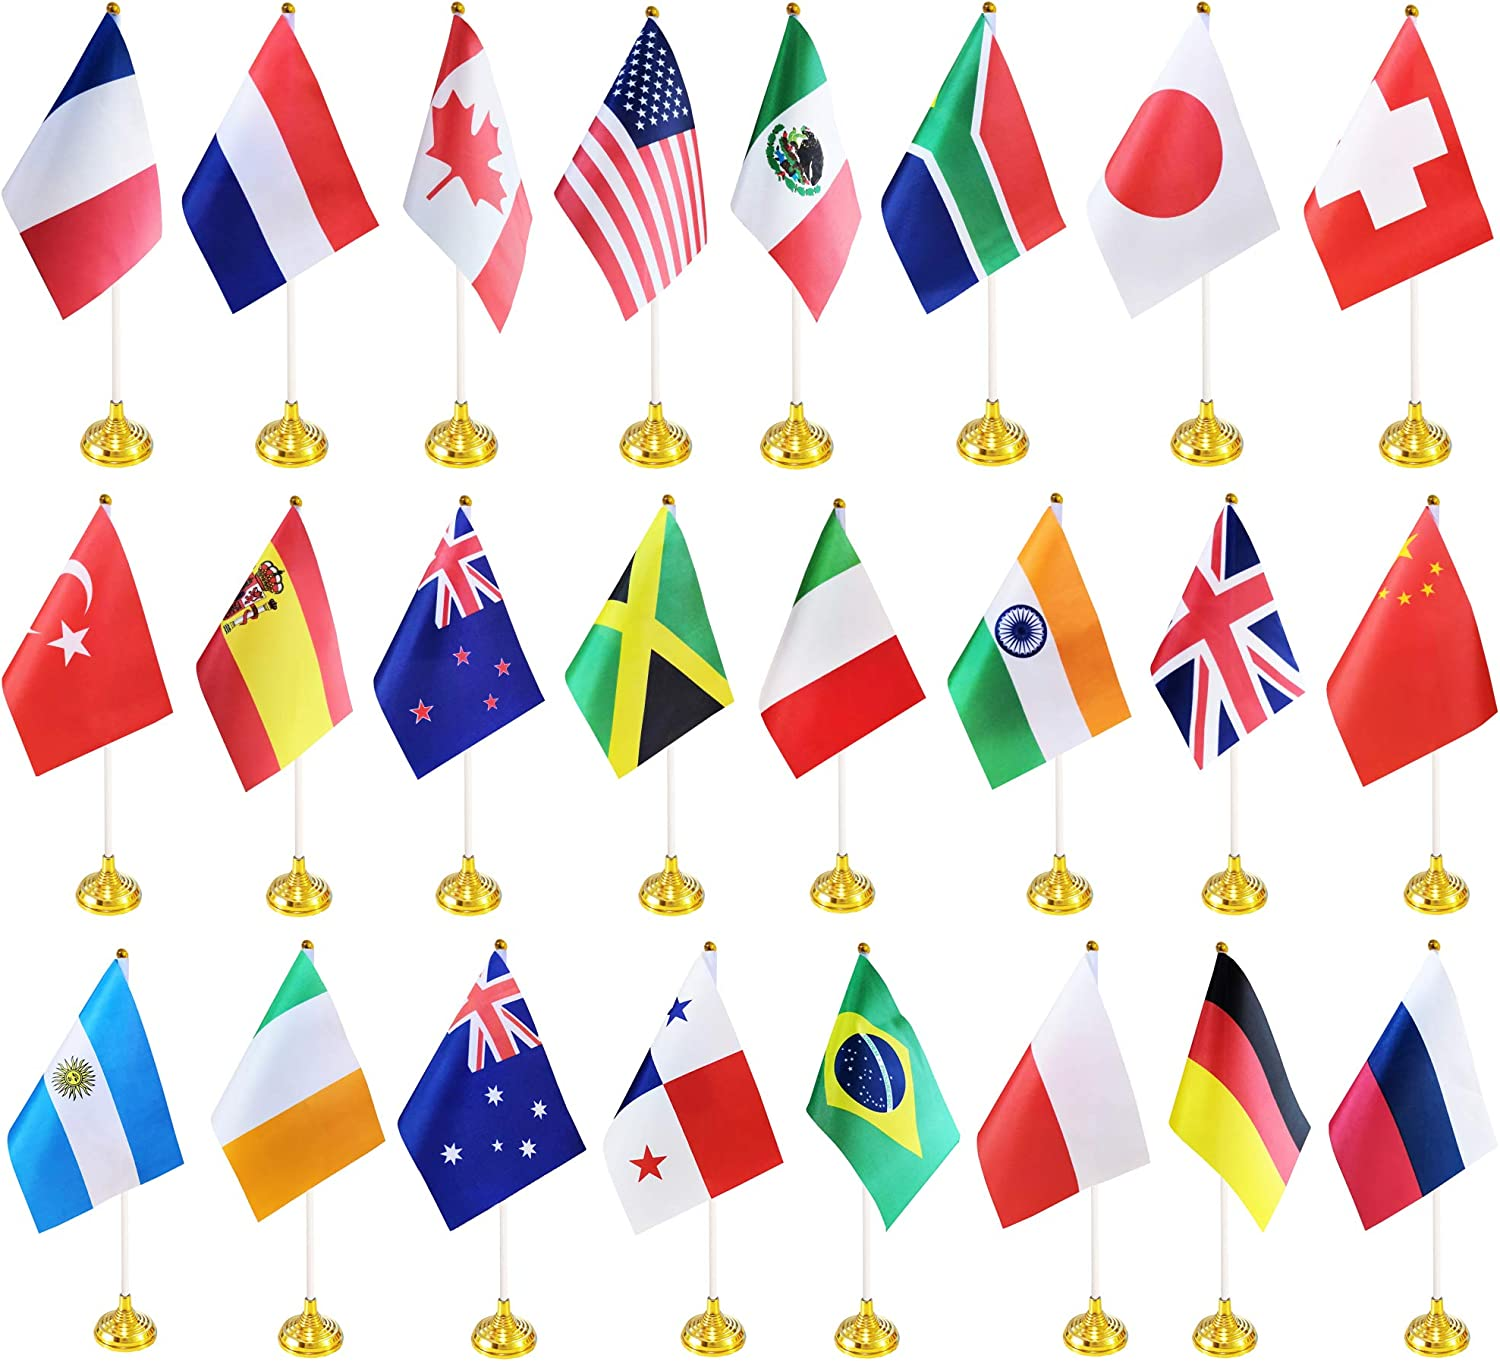 BCLin 24 Pack International Country Desk Flags,Small Mini World Deluxe Table Flags Set with Stand Base,8.2 x 5.5 inches Miniature Desktop Flag